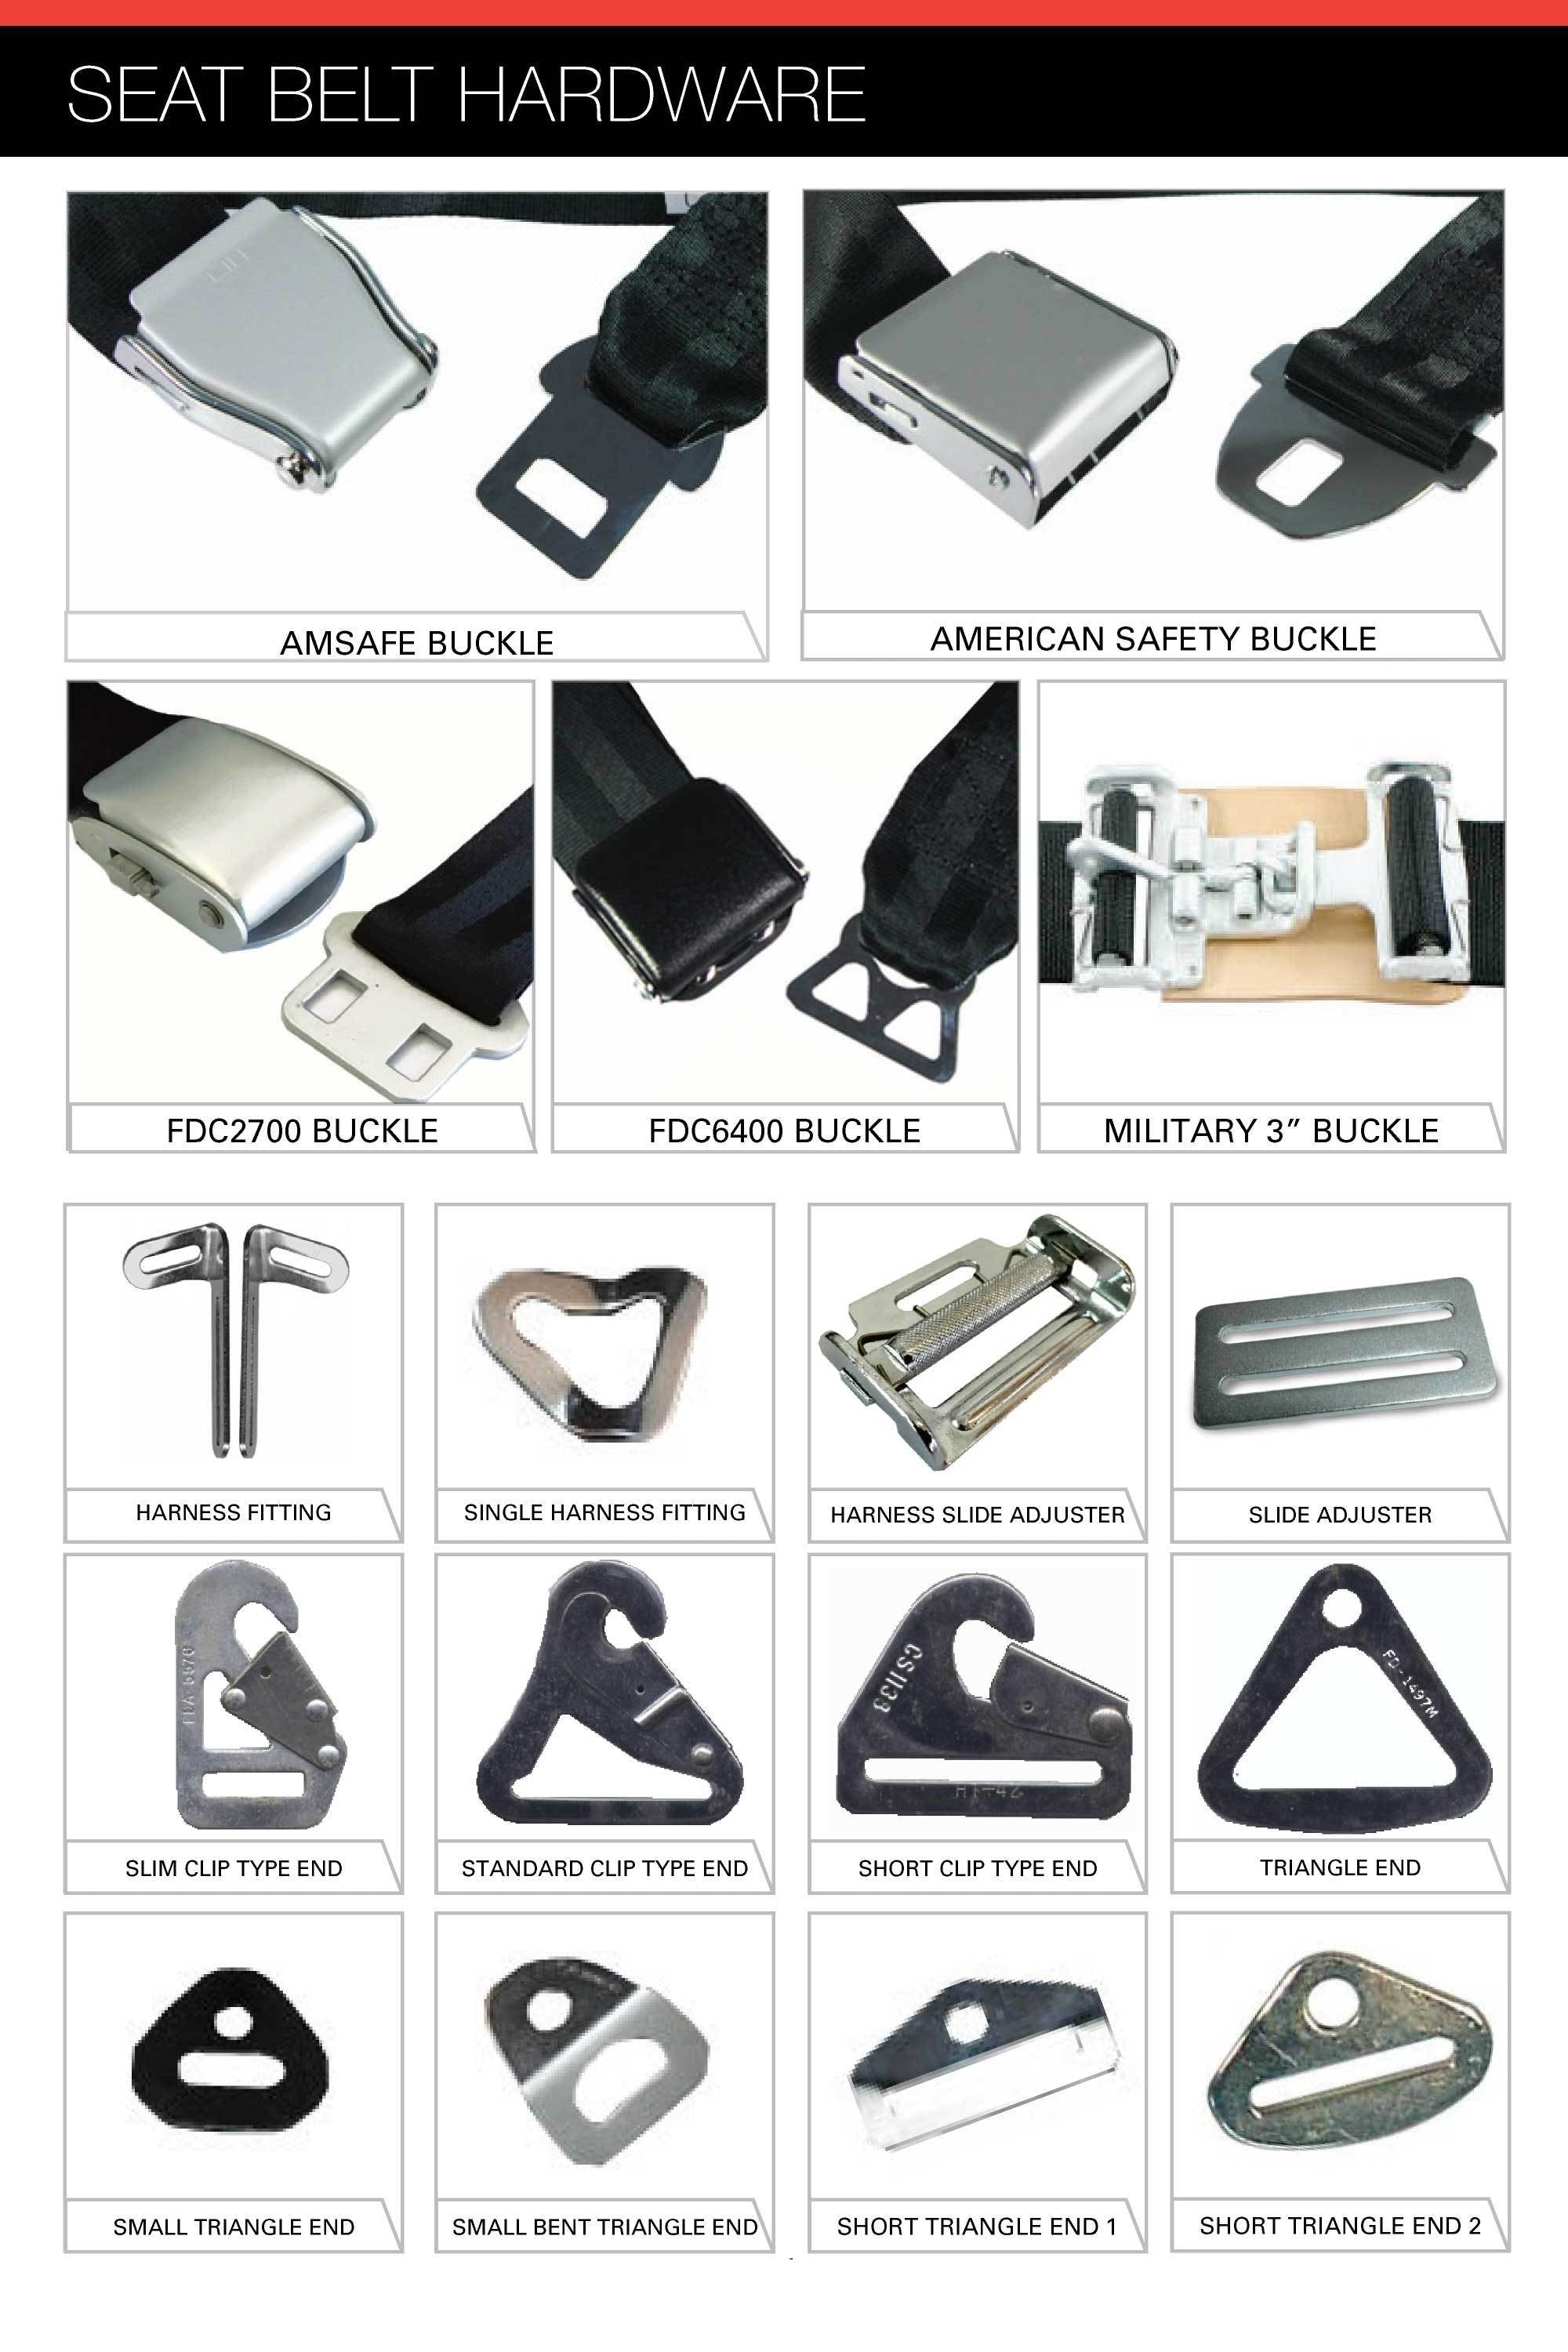 Aircraft Seat Belt Hardware